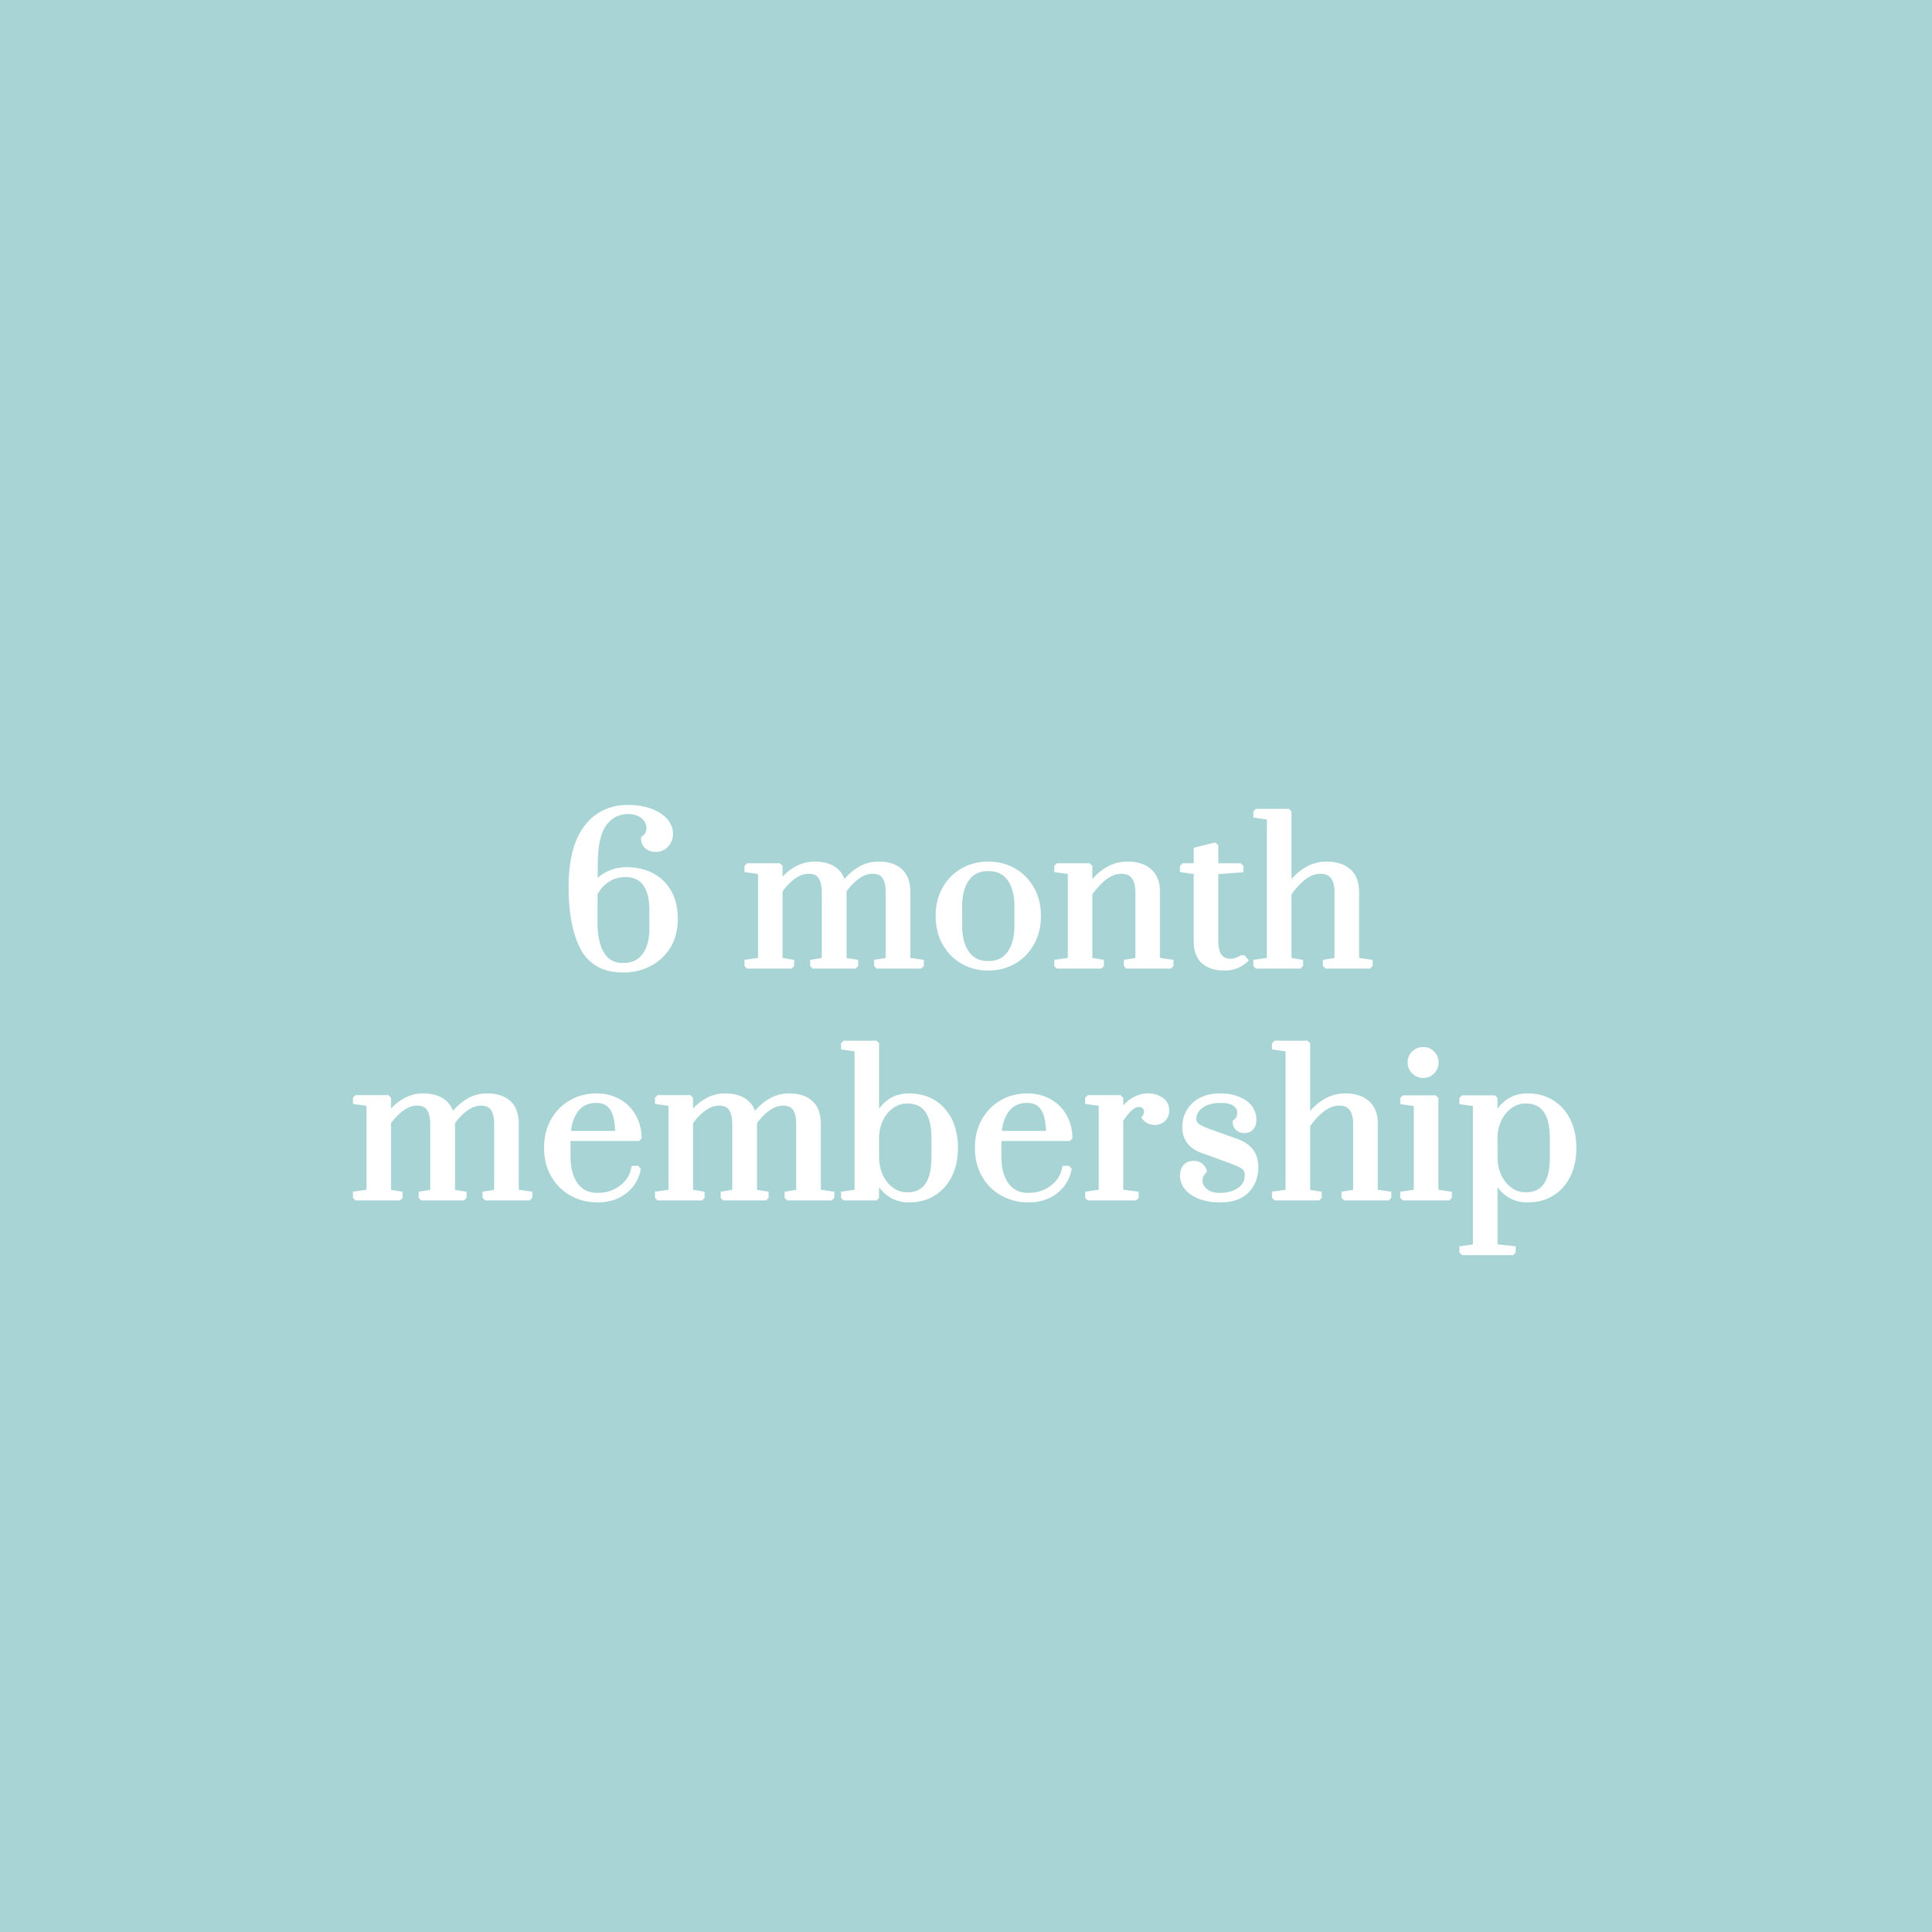 RM2,250 - (approx. USD 545) for a 6-month membership (equals to RM375 per month)